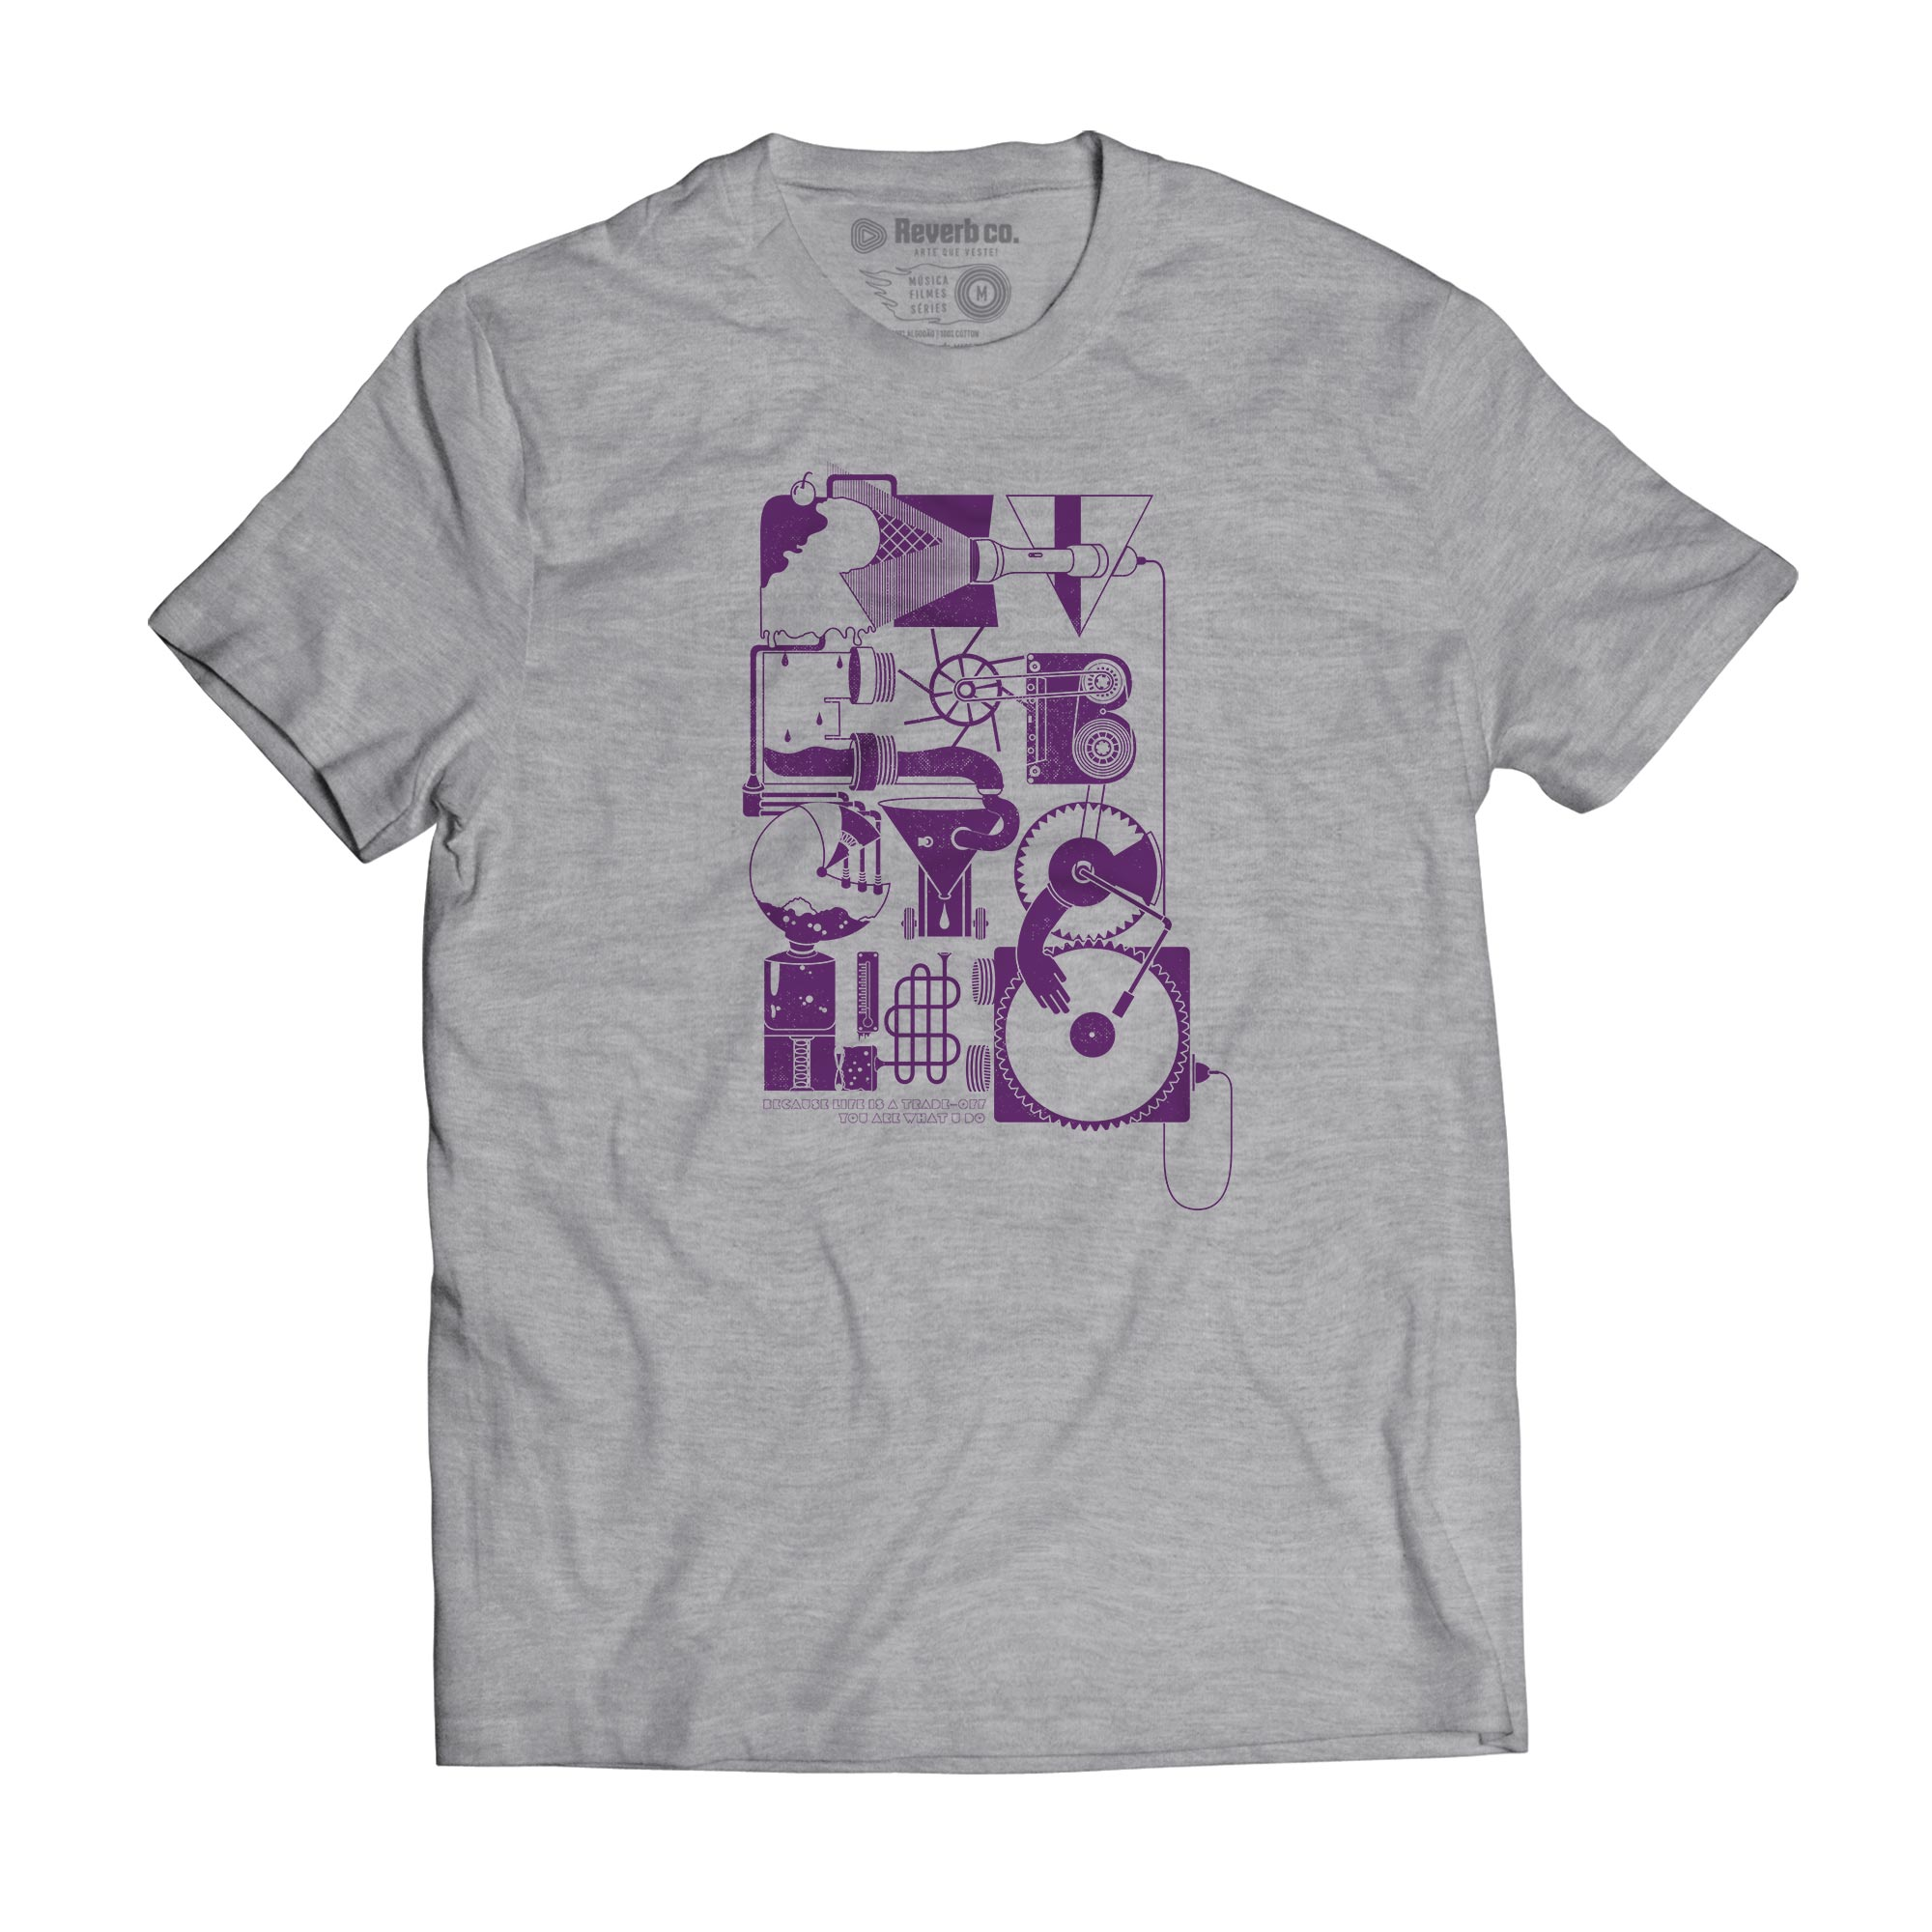 Camiseta Reverb Cycle - Masculino